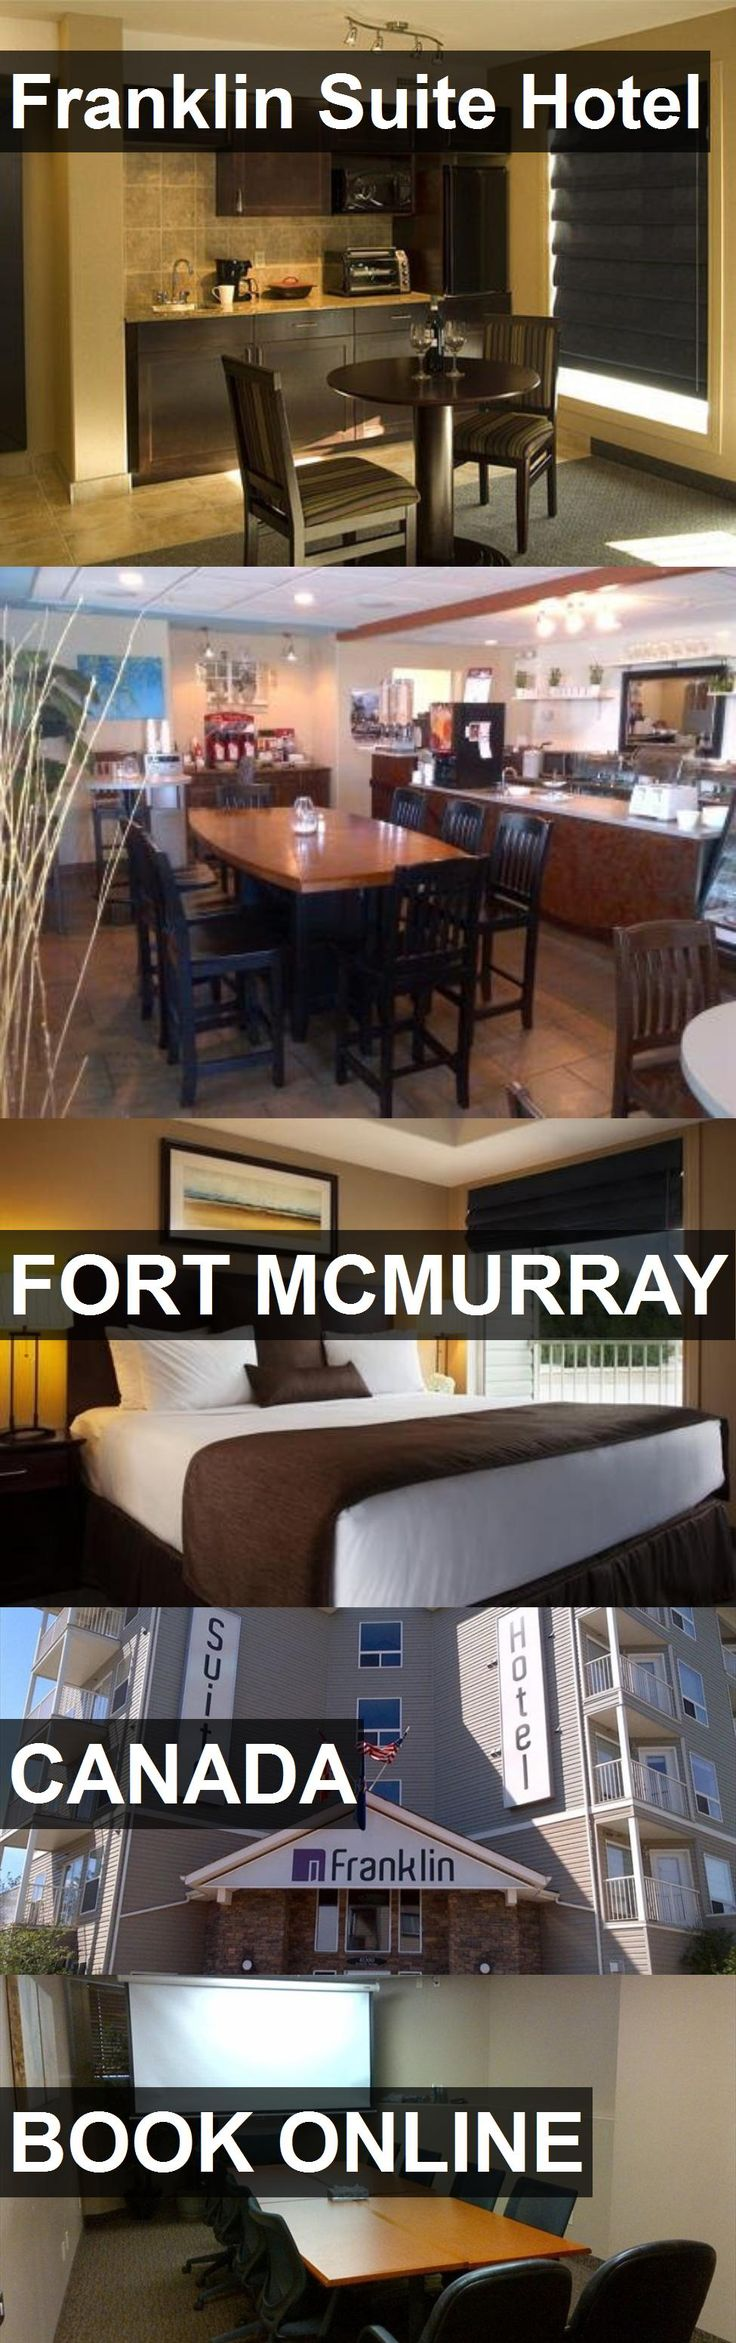 Franklin Suite Hotel in Fort Mcmurray, Canada. For more information, photos, reviews and best prices please follow the link. #Canada #FortMcmurray #travel #vacation #hotel